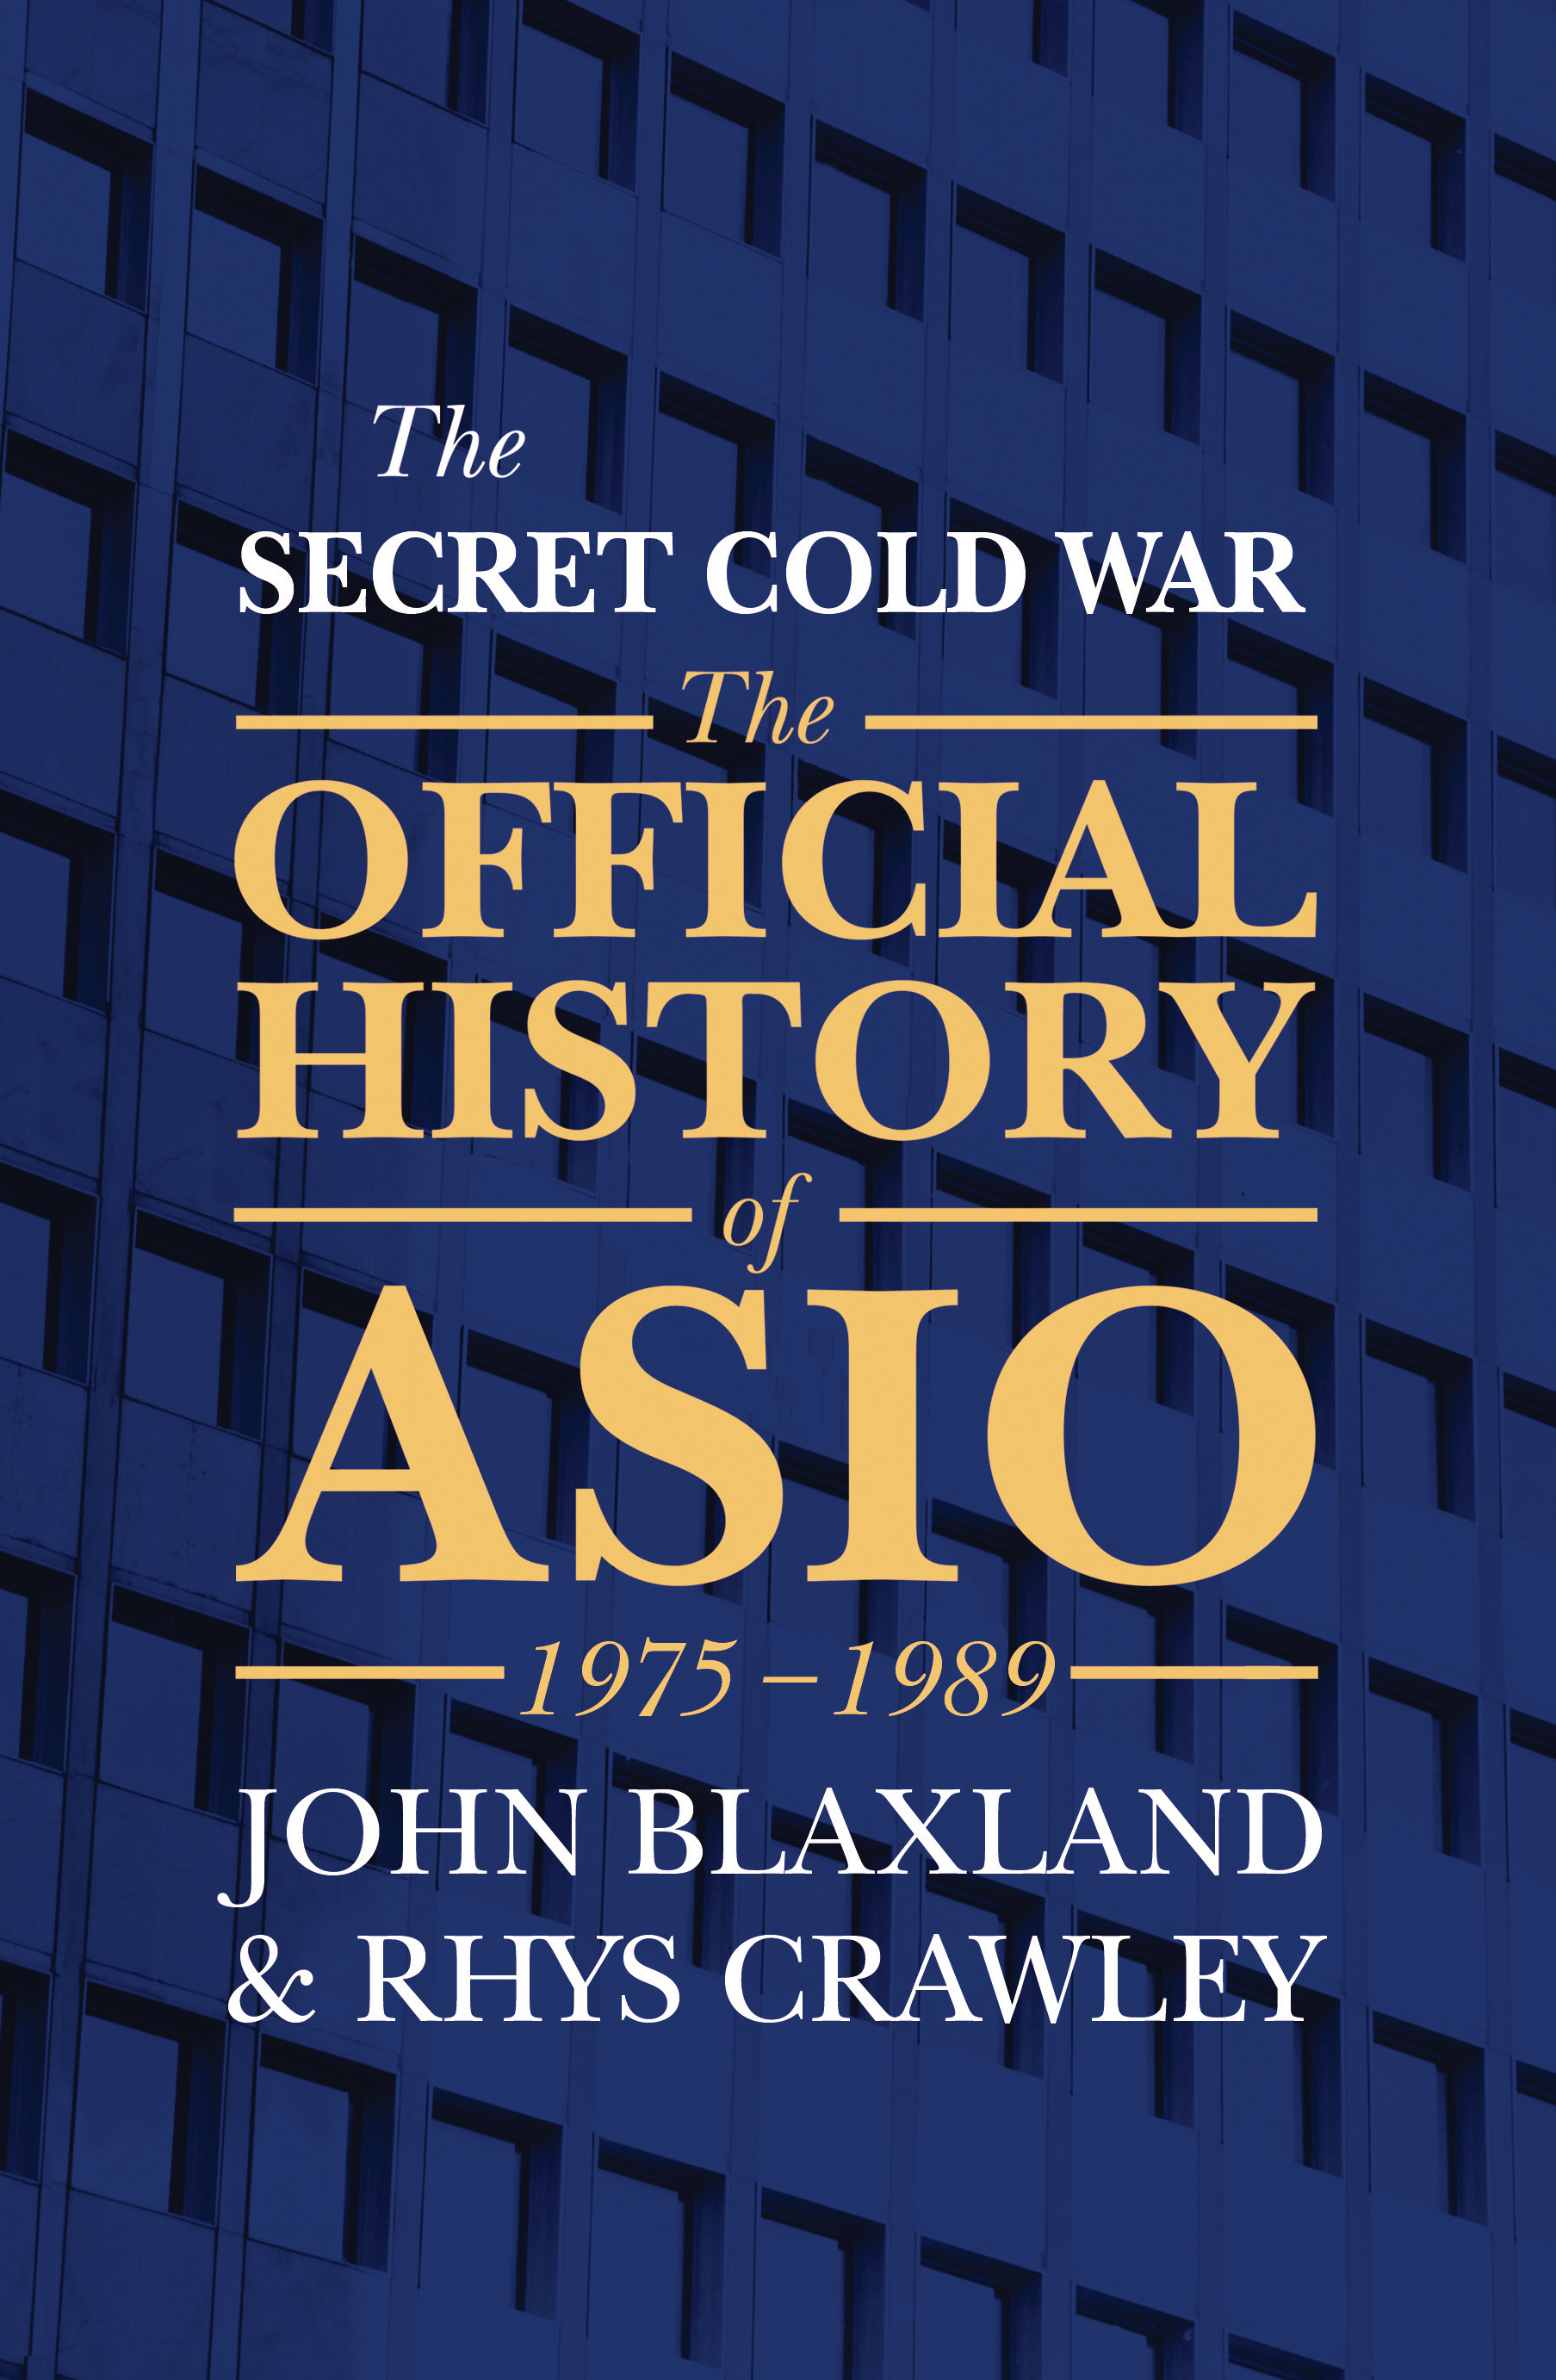 The Secret Cold WarThe Official History of ASIO, 1975-1989